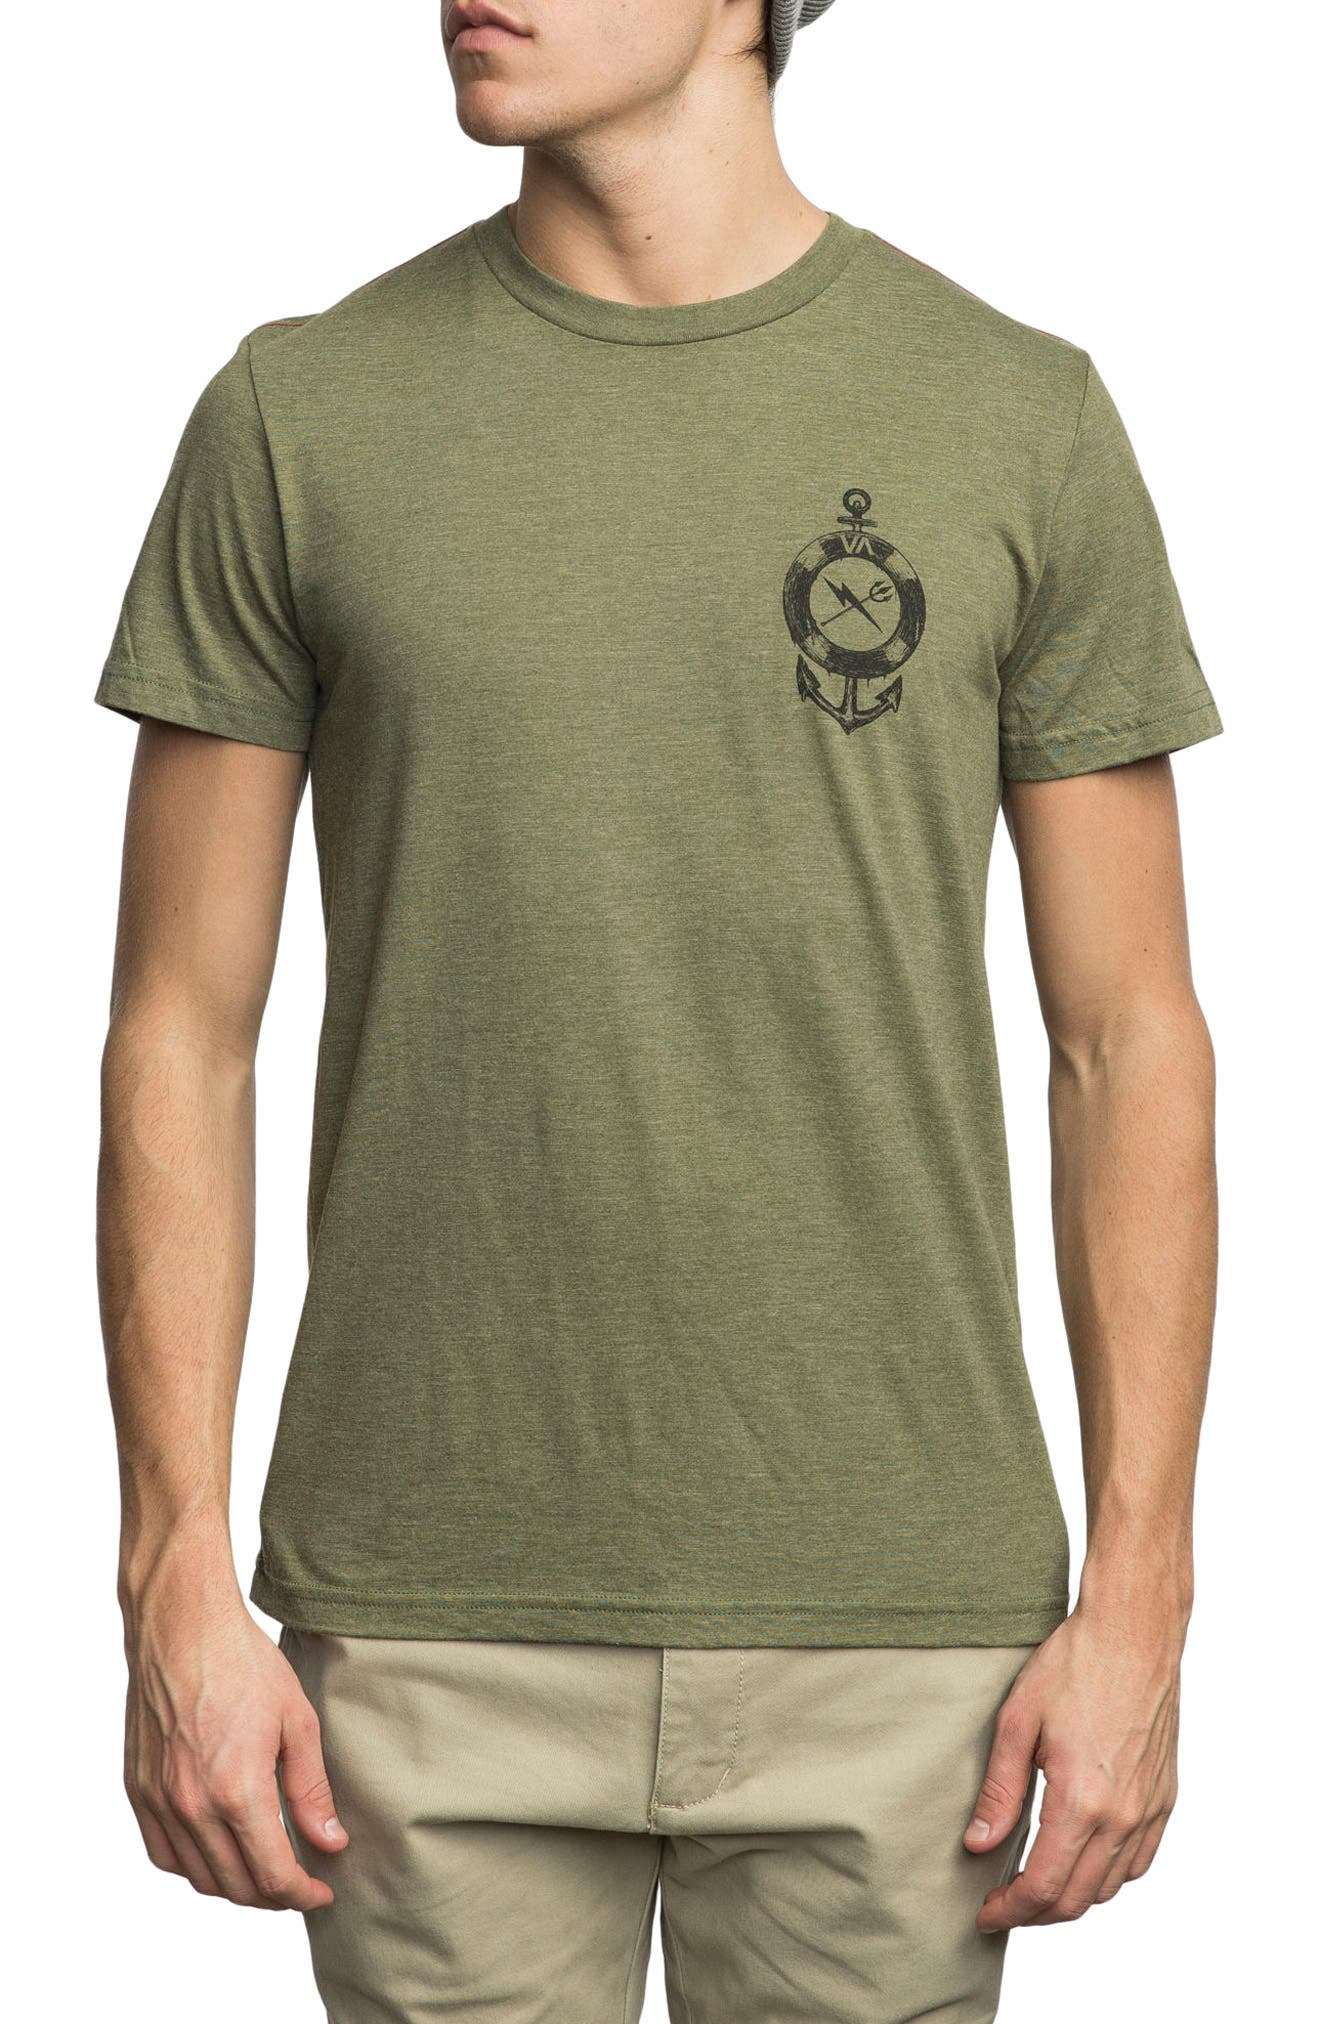 Alternate Image 1 Selected - RVCA Sea Life Graphic T-Shirt